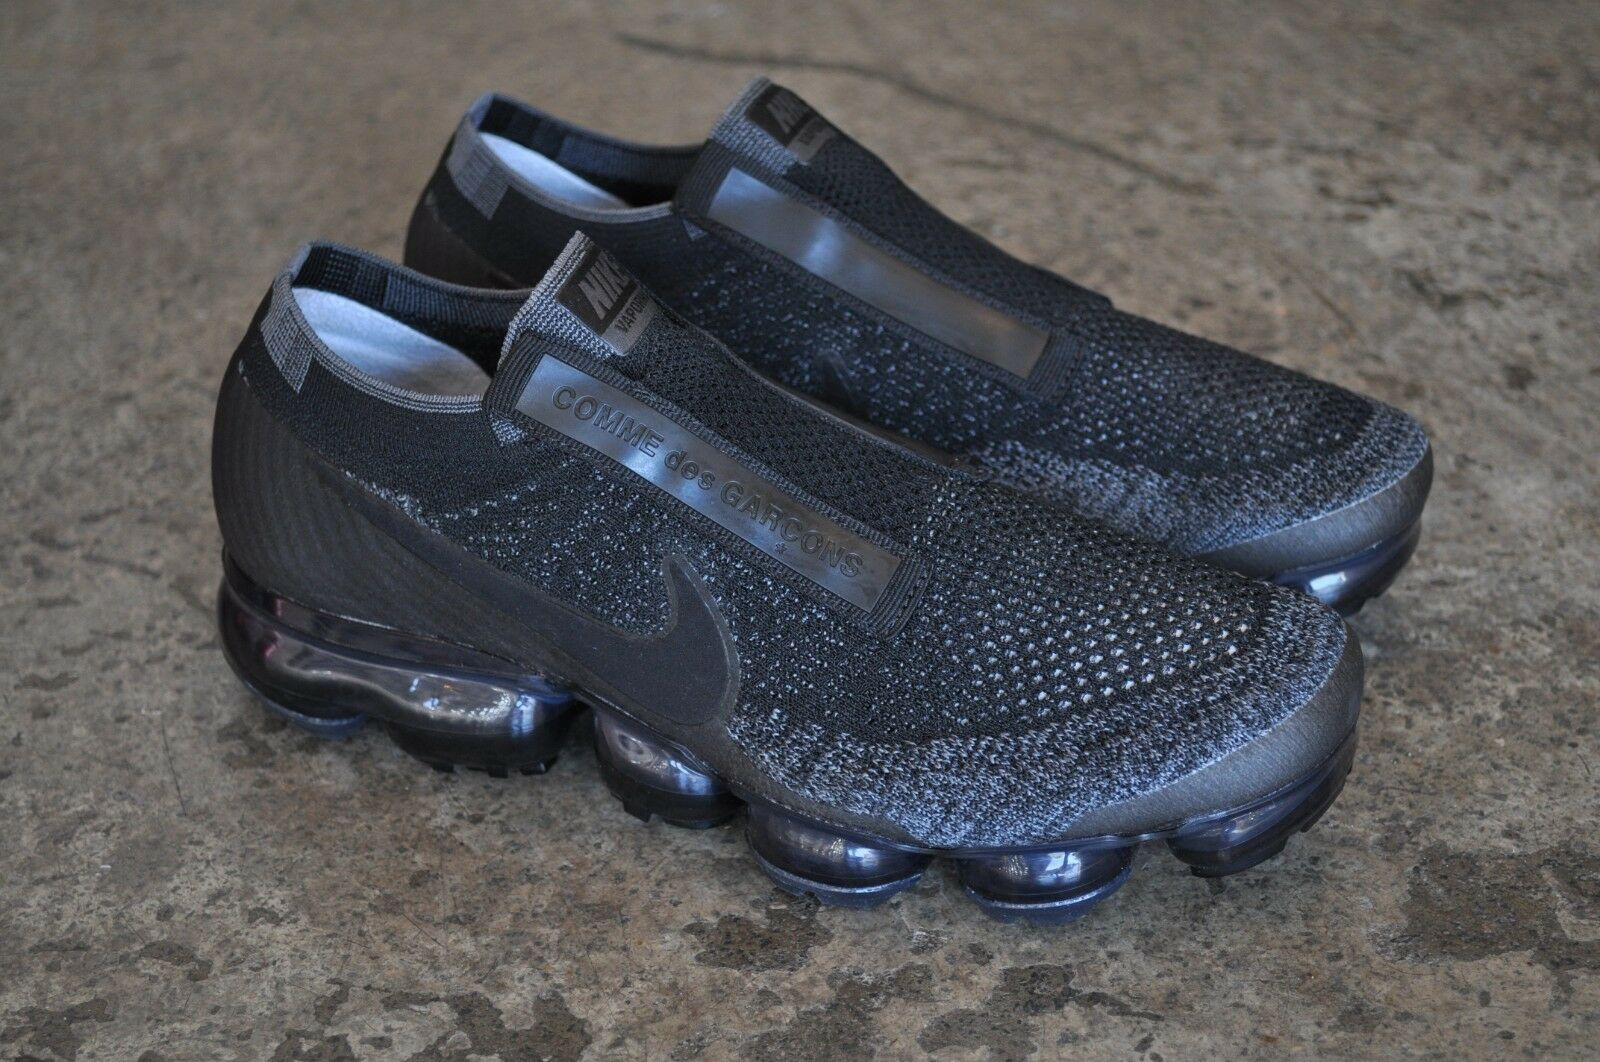 747bf8d1c7a Nike Air Vapormax Flyknit CDG Comme Des Garcons - Black Dark Grey ...